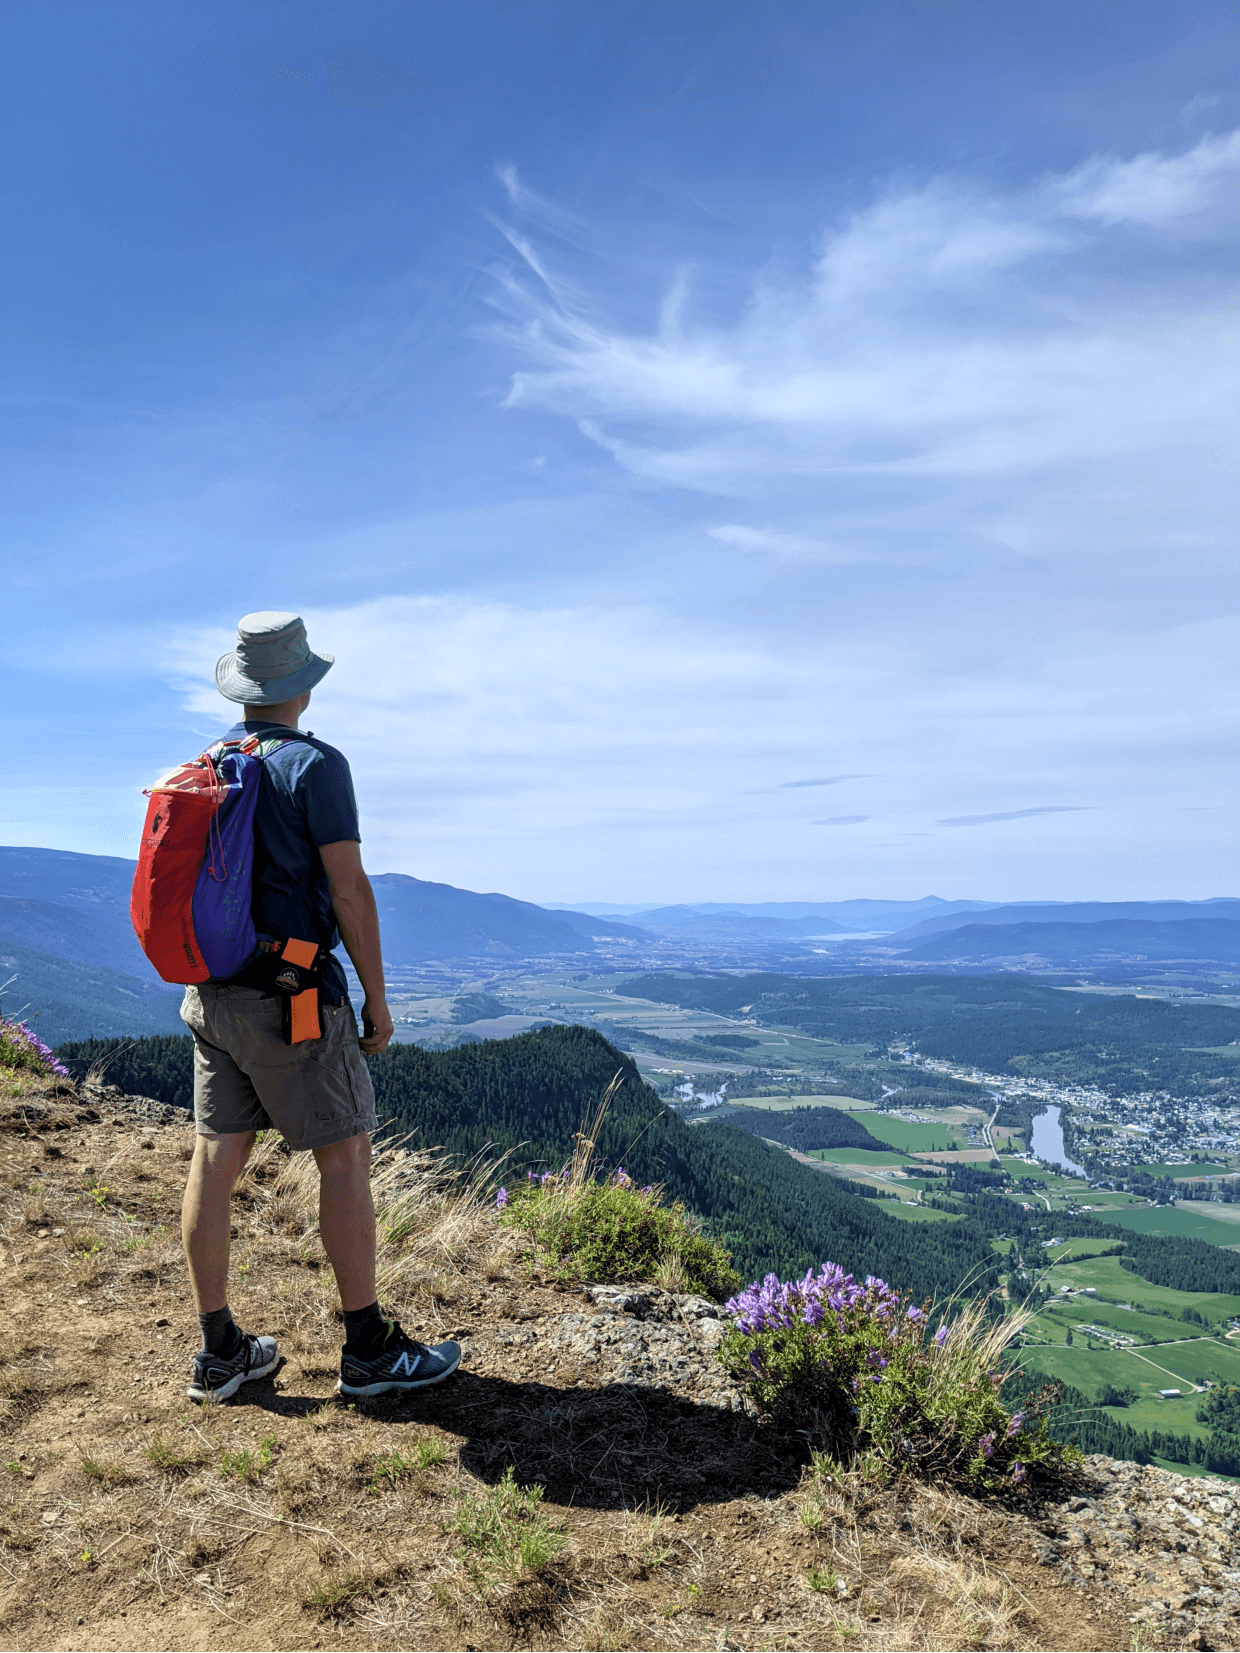 JR stands on the edge of Enderby Cliffs, looking out at views of rolling farmland, a highway and in the distance, the city of Vernon and Okanagan Lake